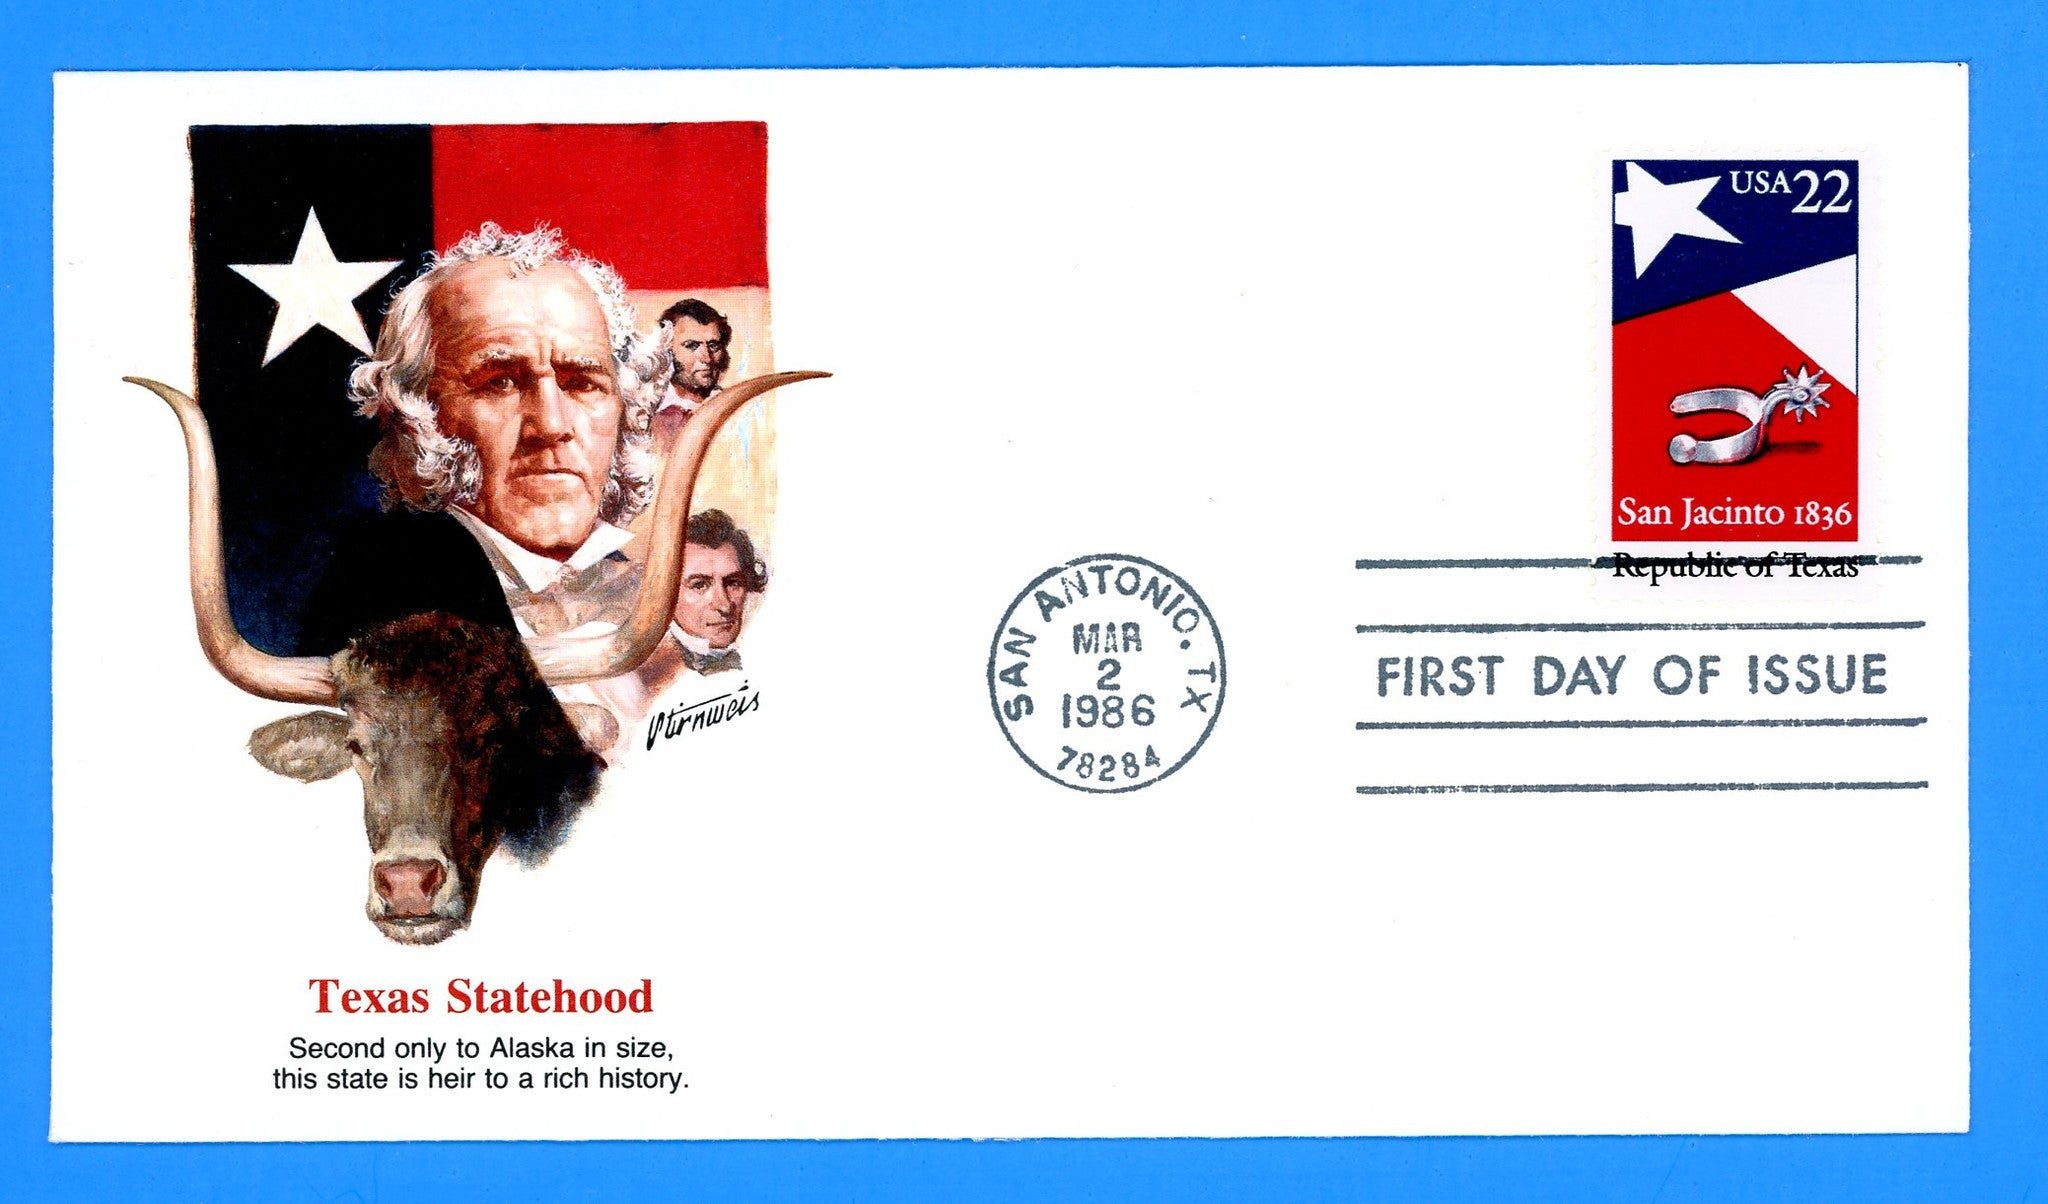 Republic of Texas, San Jacinto First Day Cover by Fleetwood